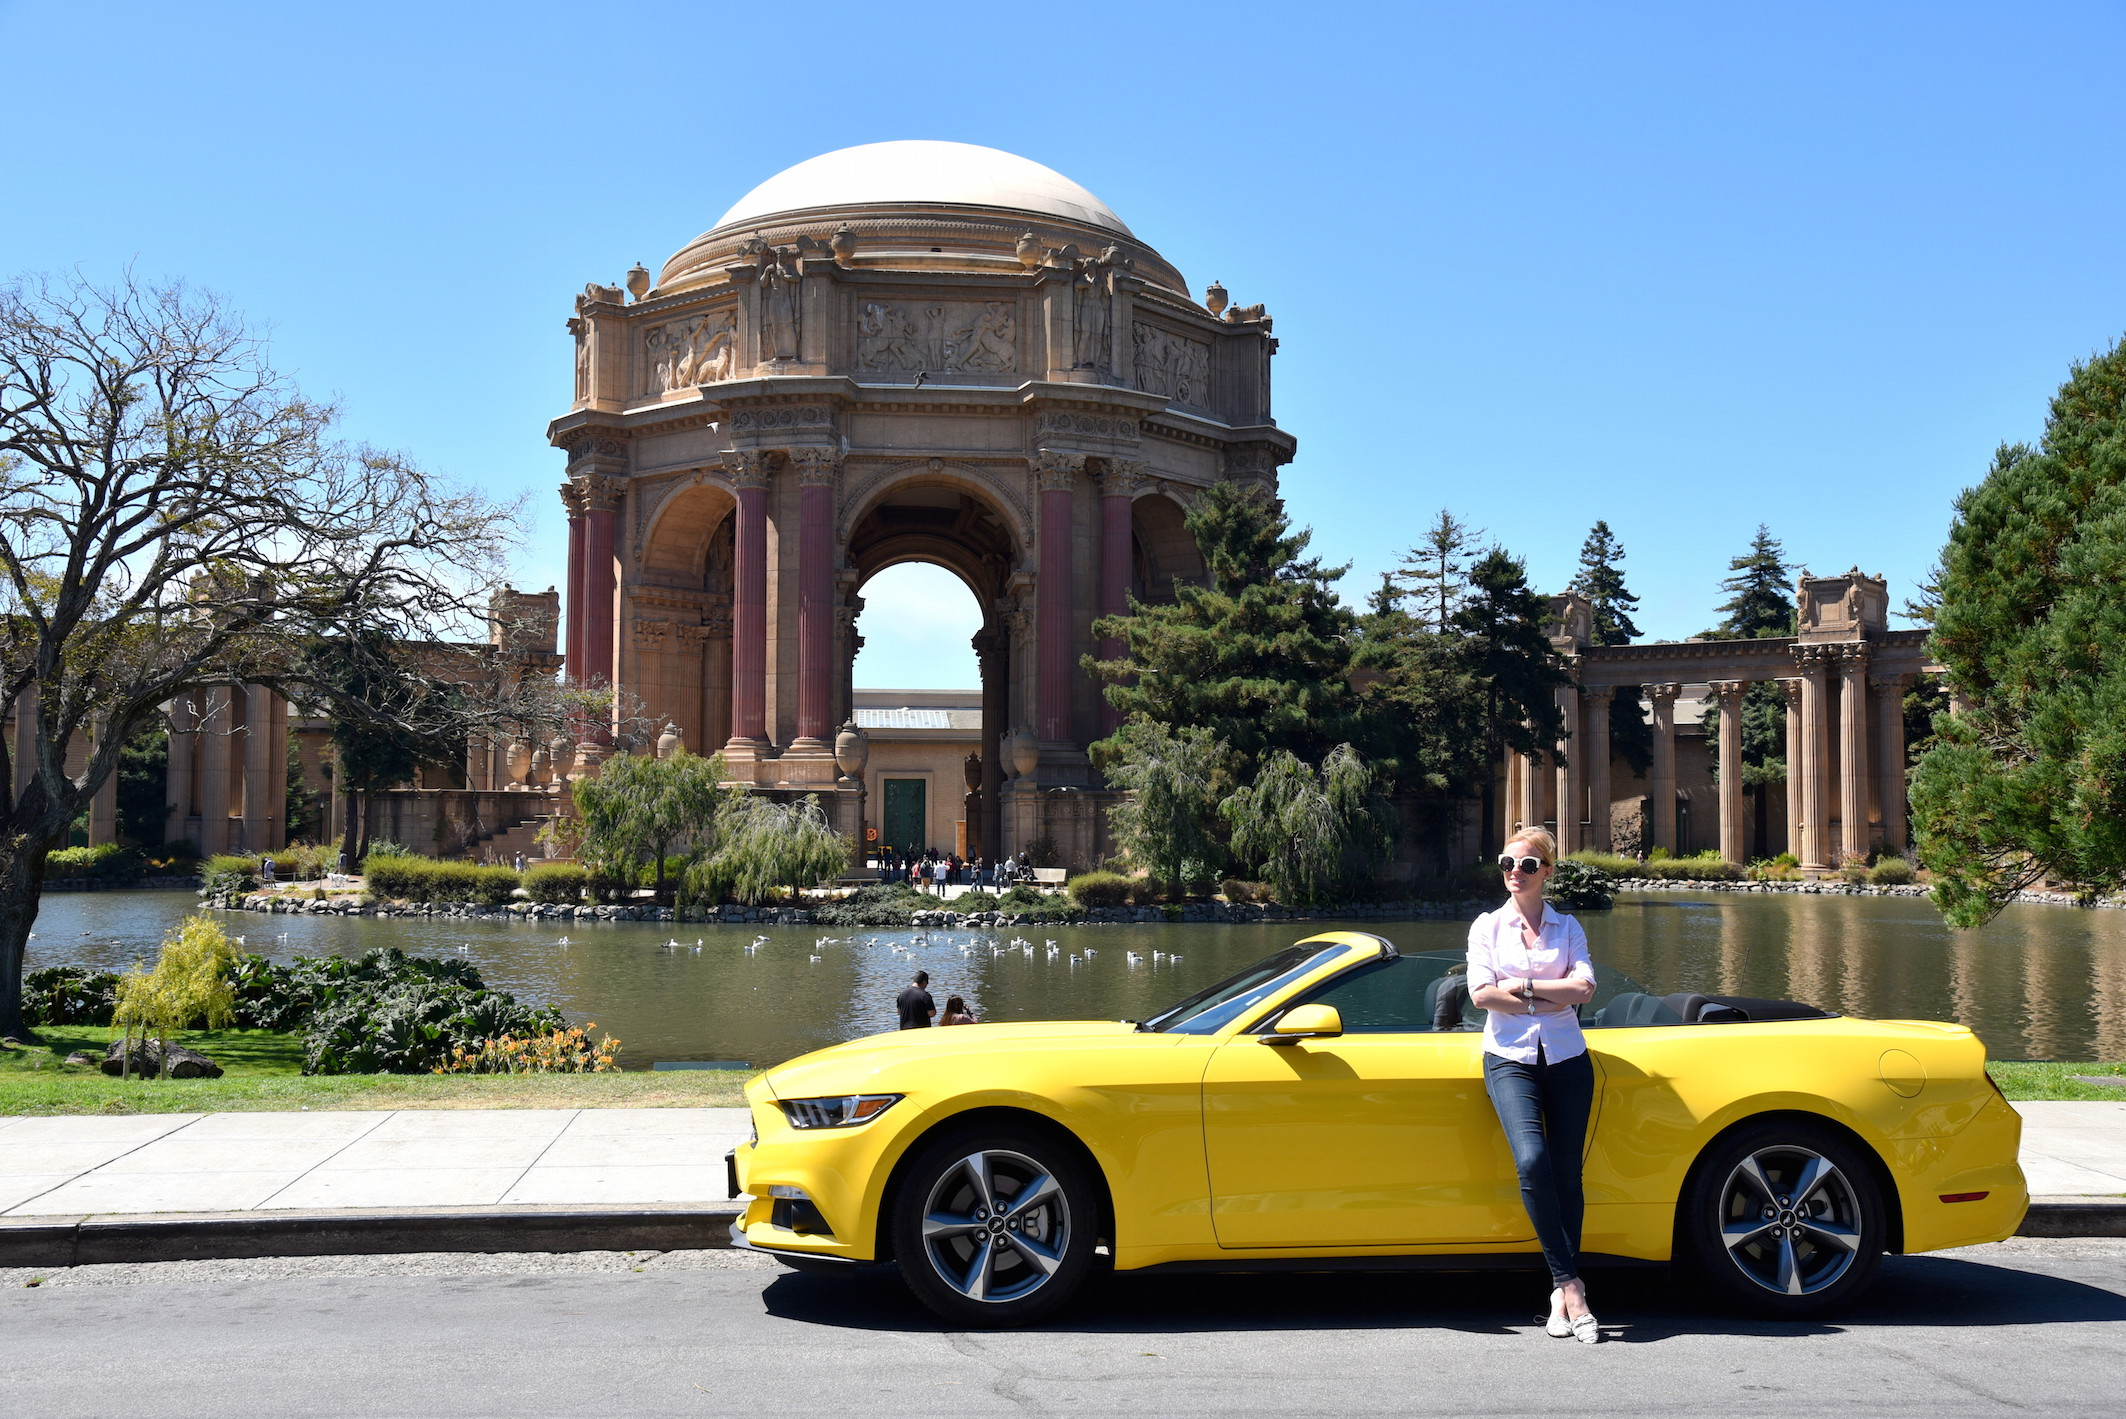 Rent à Ford Mustang in San Francisco